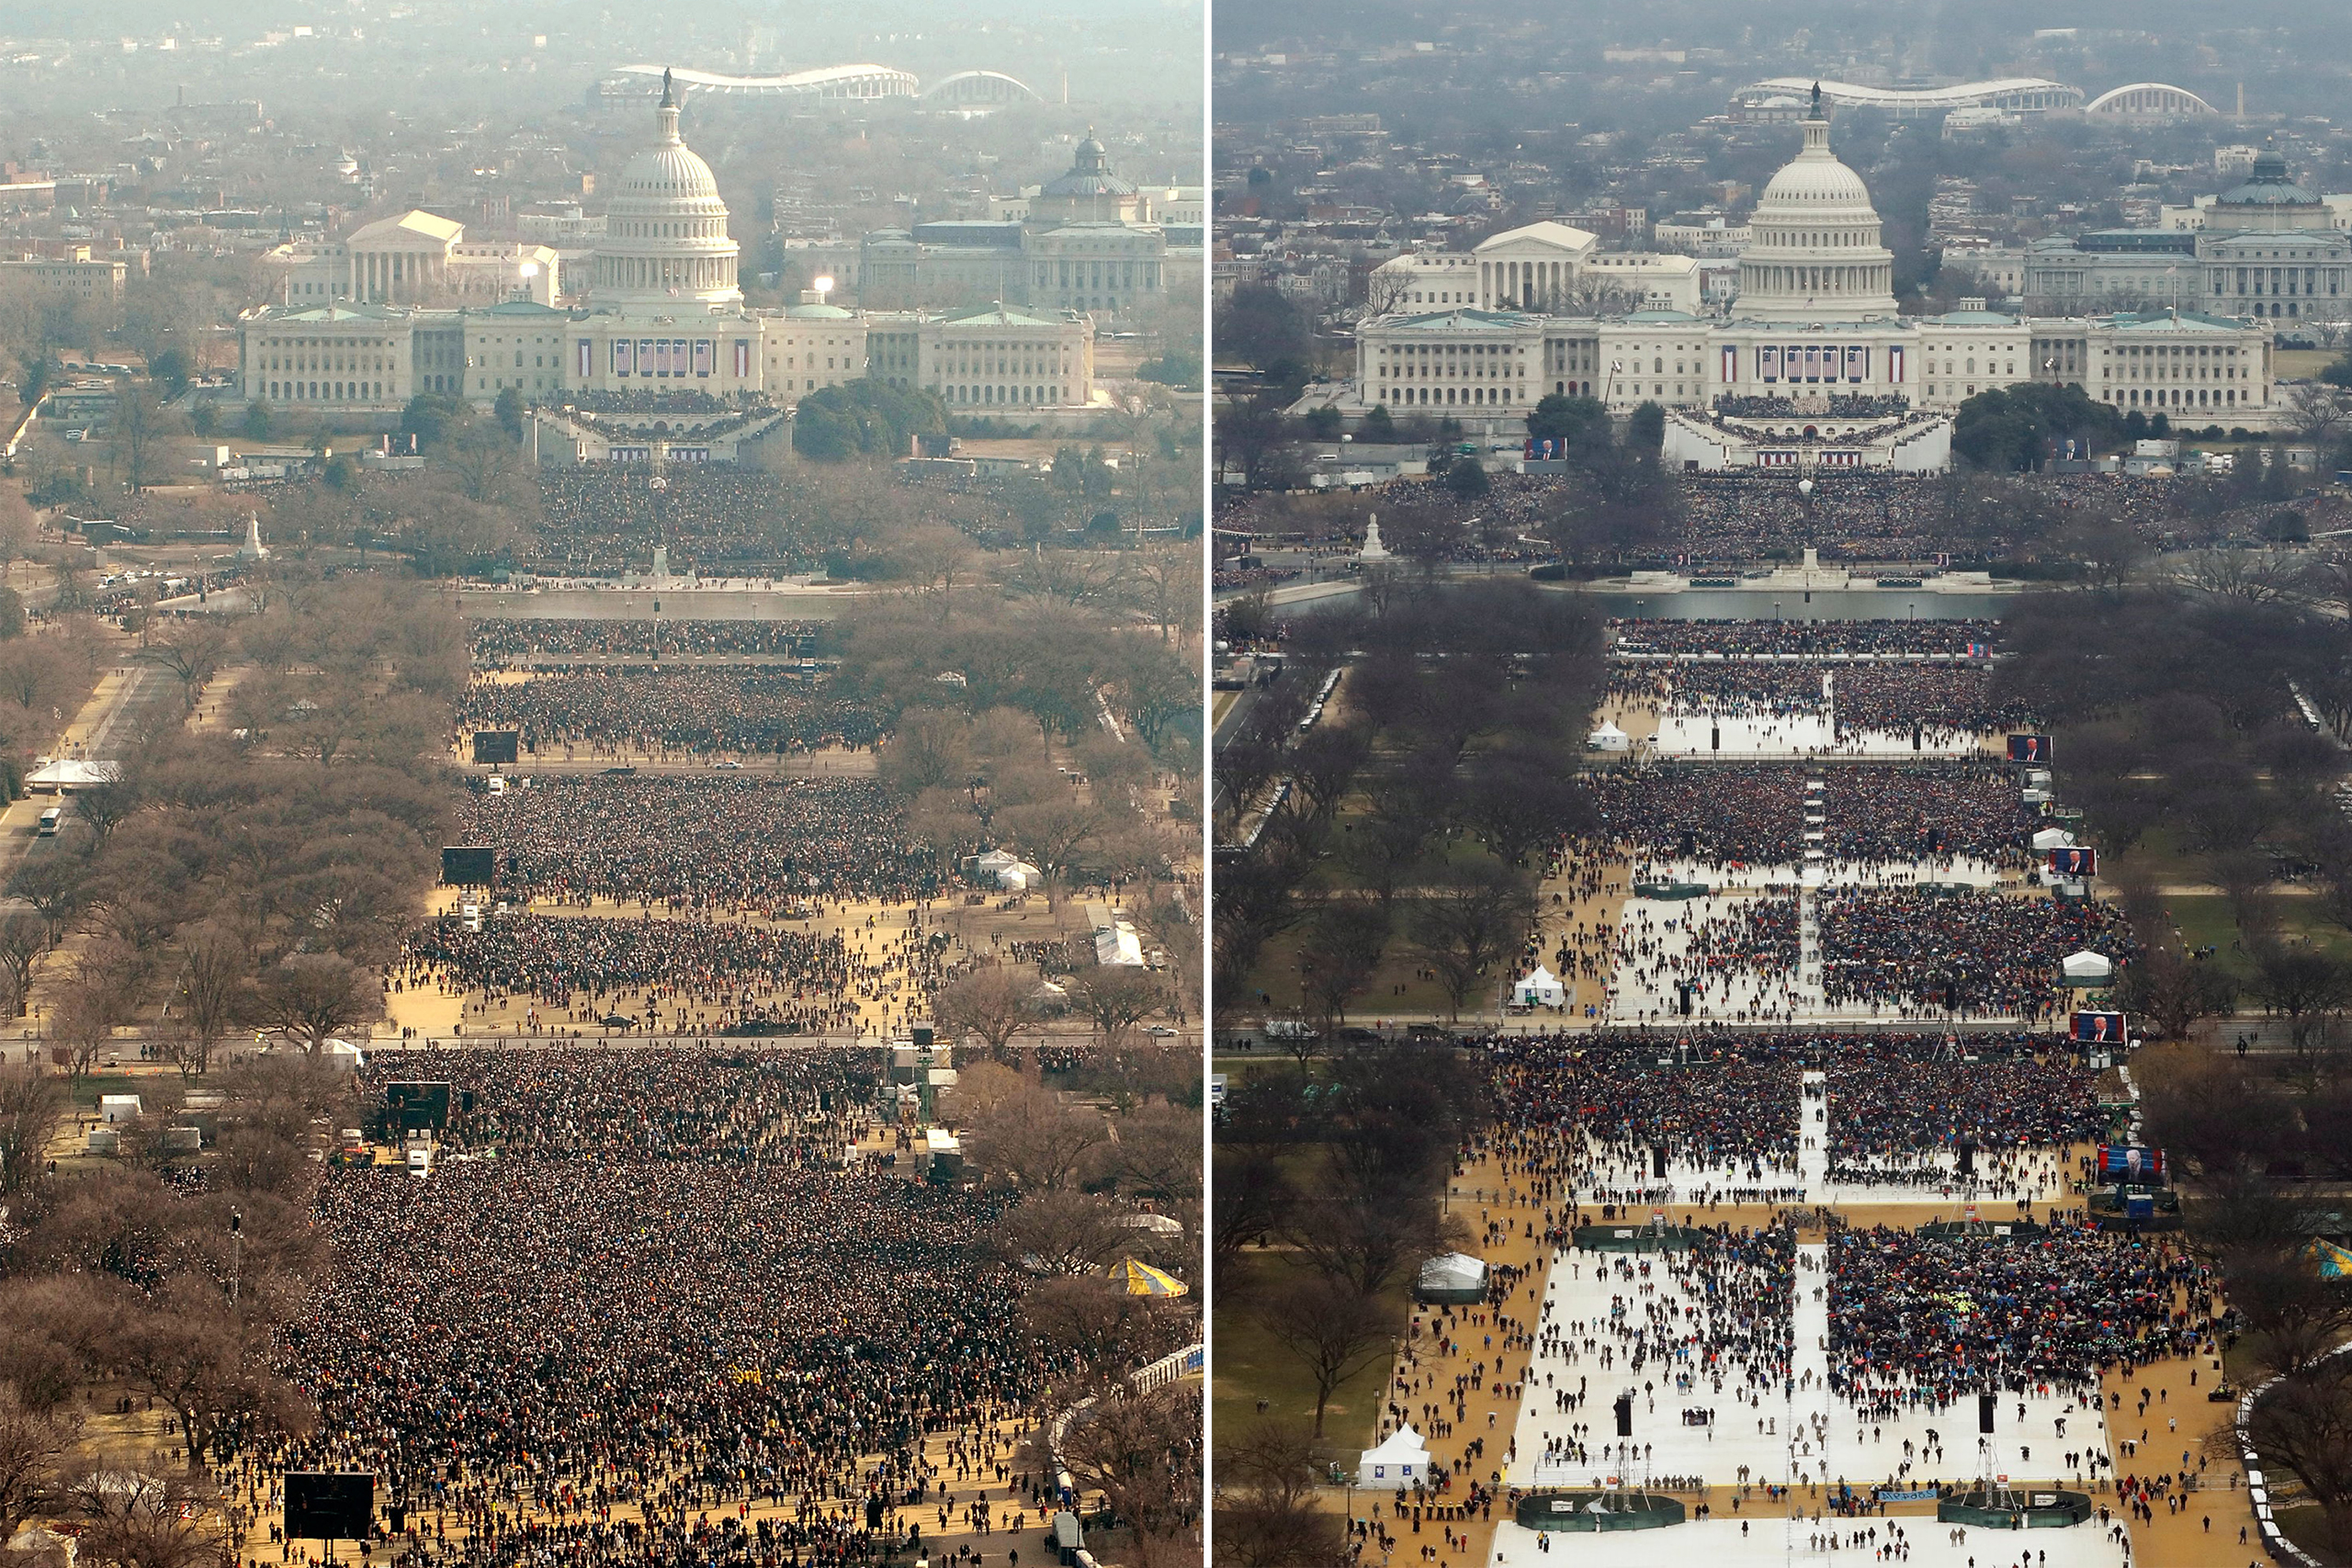 Trump Inauguration: Crowd Smaller Than Obama's | Time